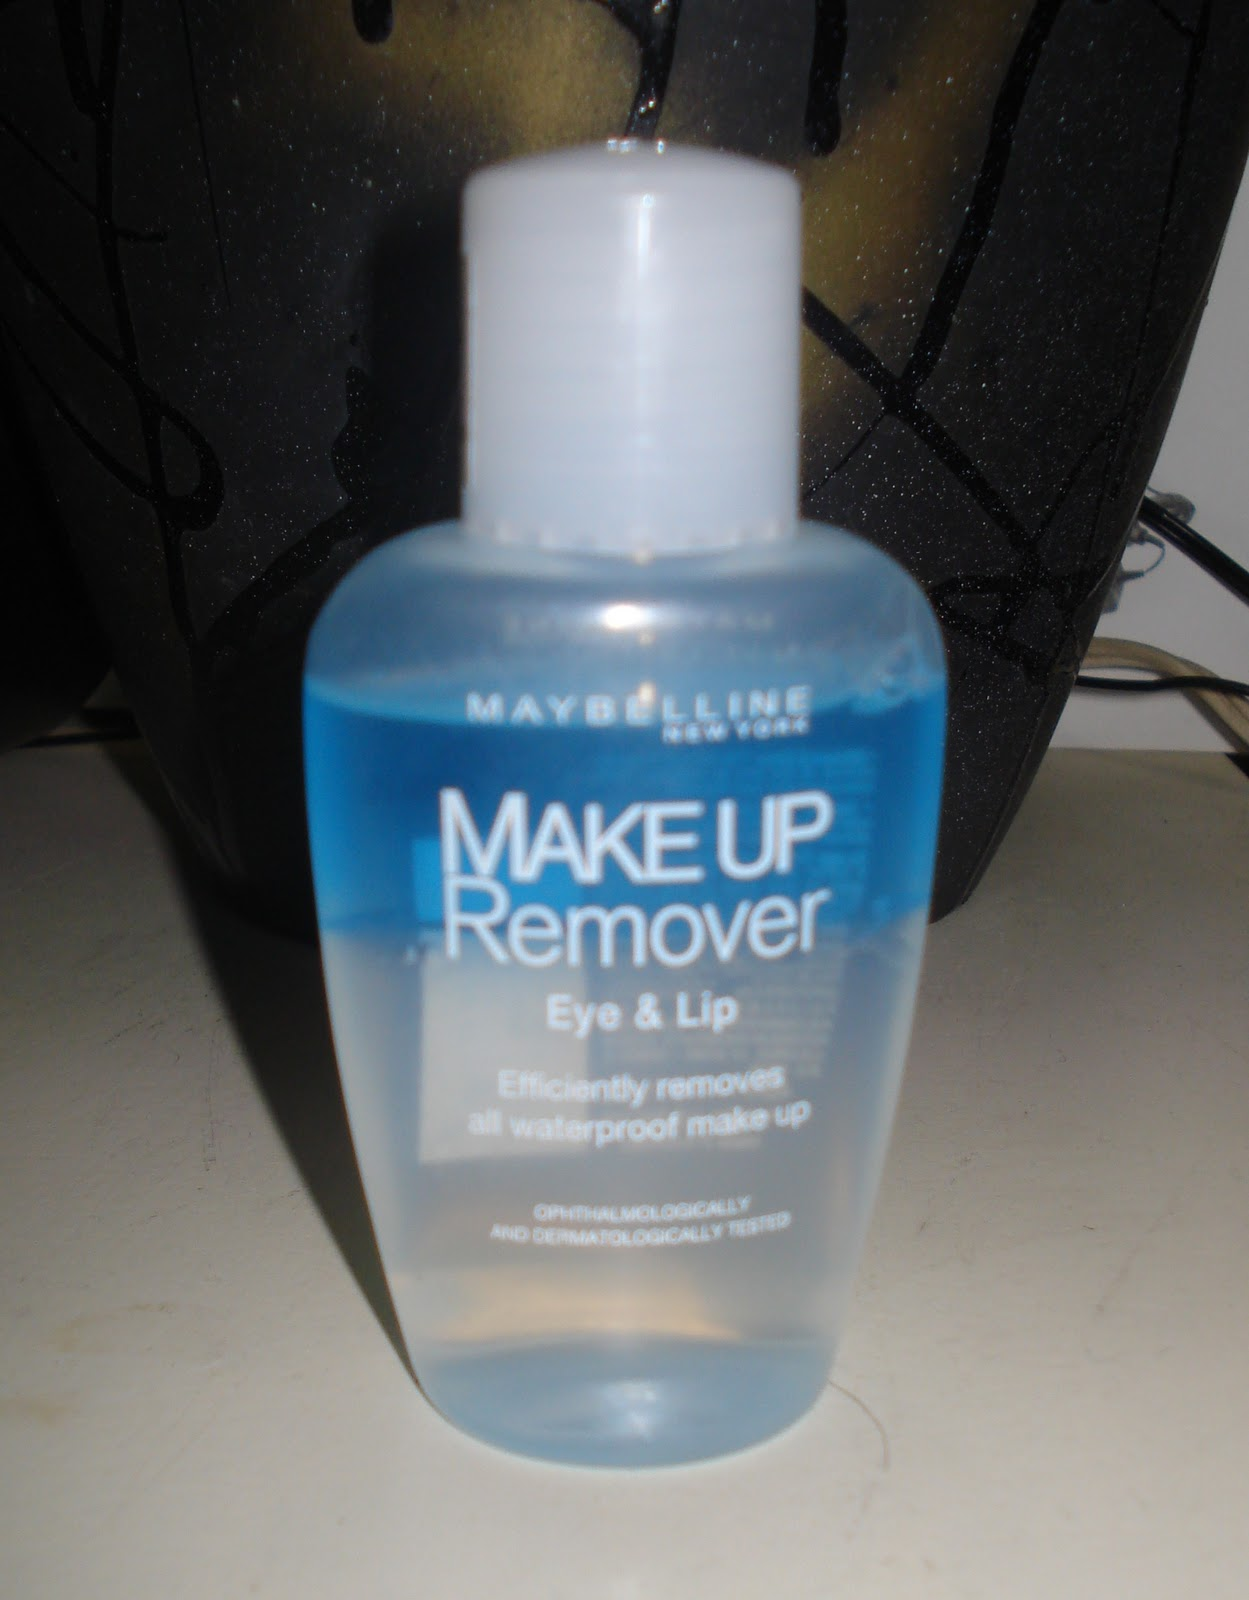 I have been pretty spoilt when it comes to Make Up Removers. A relative gifted me the MAC purple bottle one, and thats the best makeup remover iv ever used ...